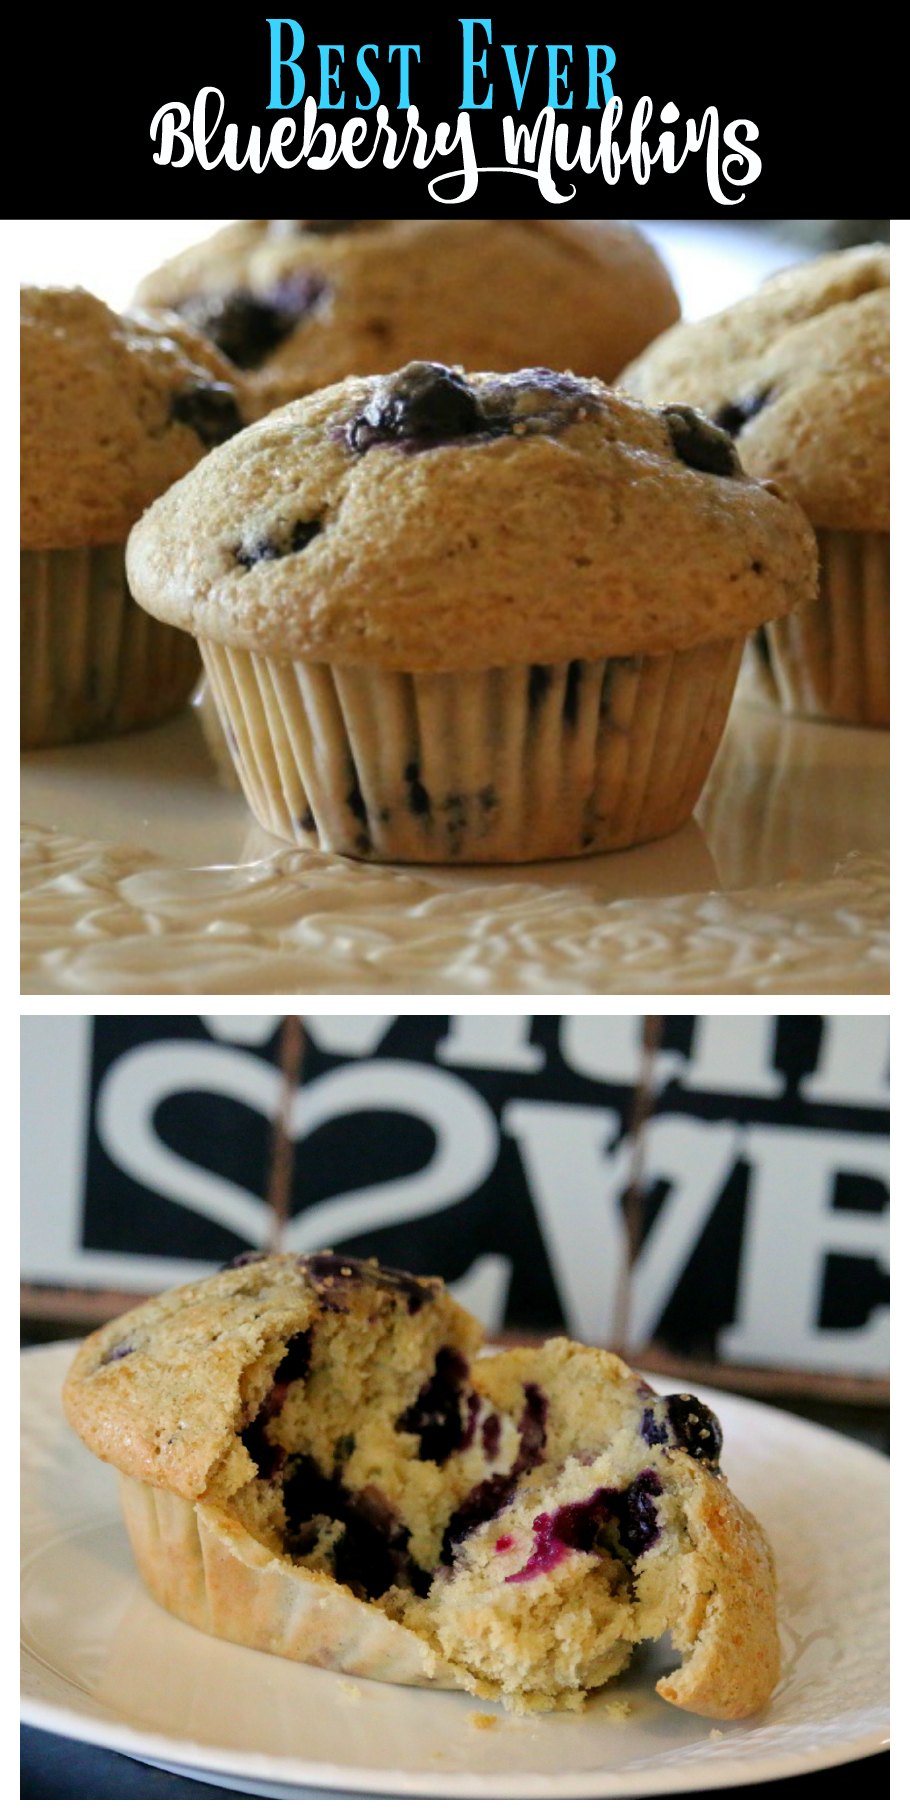 Best Ever Blueberry Muffin Recipe | Simply the Best Recipe Ever for homemade blueberry muffins  | CeceliasGoodStuff.com | Good Food for Good People